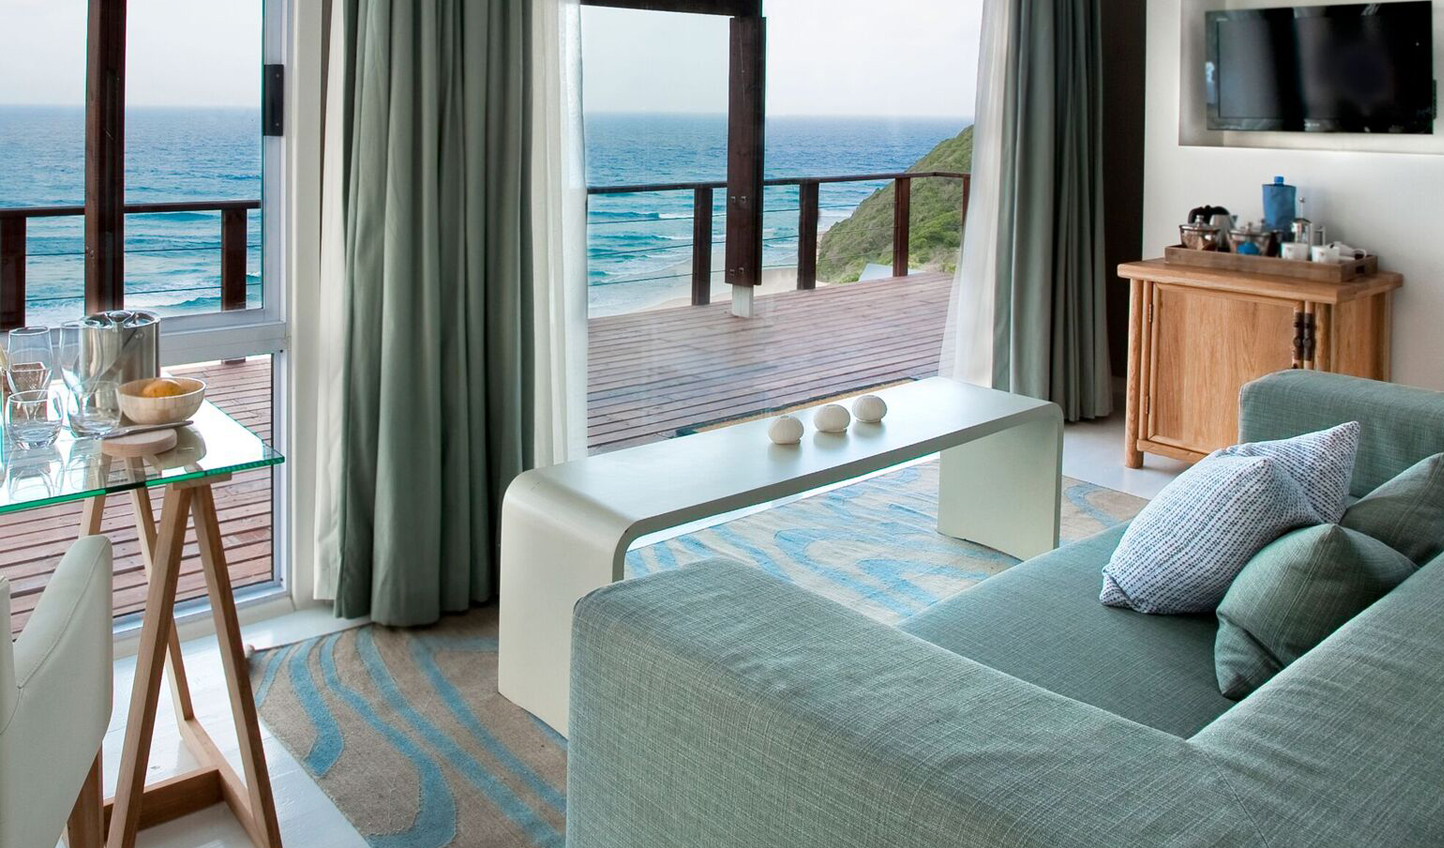 Wake up to sounds of the ocean and salty air